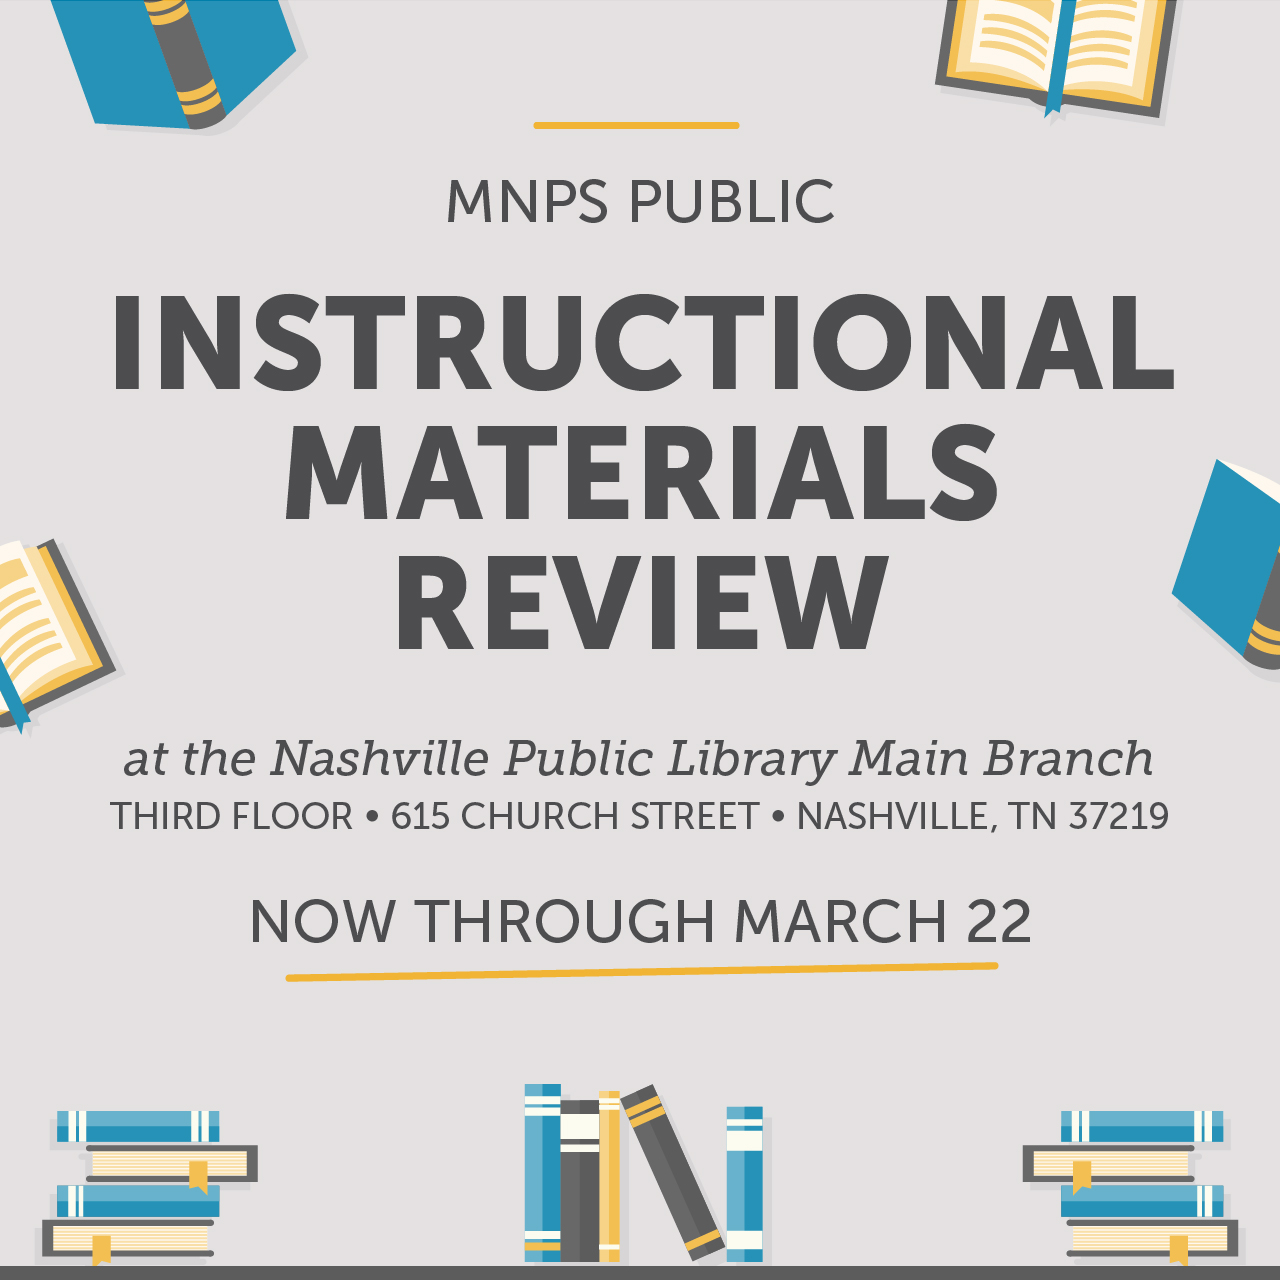 MNPS is hosting public review for 2019-20 instructional materials and textbooks. Visit the Nashville Public Library's main branch at 615 Church Street now through March 22 to provide feedback on these materials. Visit the 3rd floor at the Nashville Public Library and ask to view the textbooks.